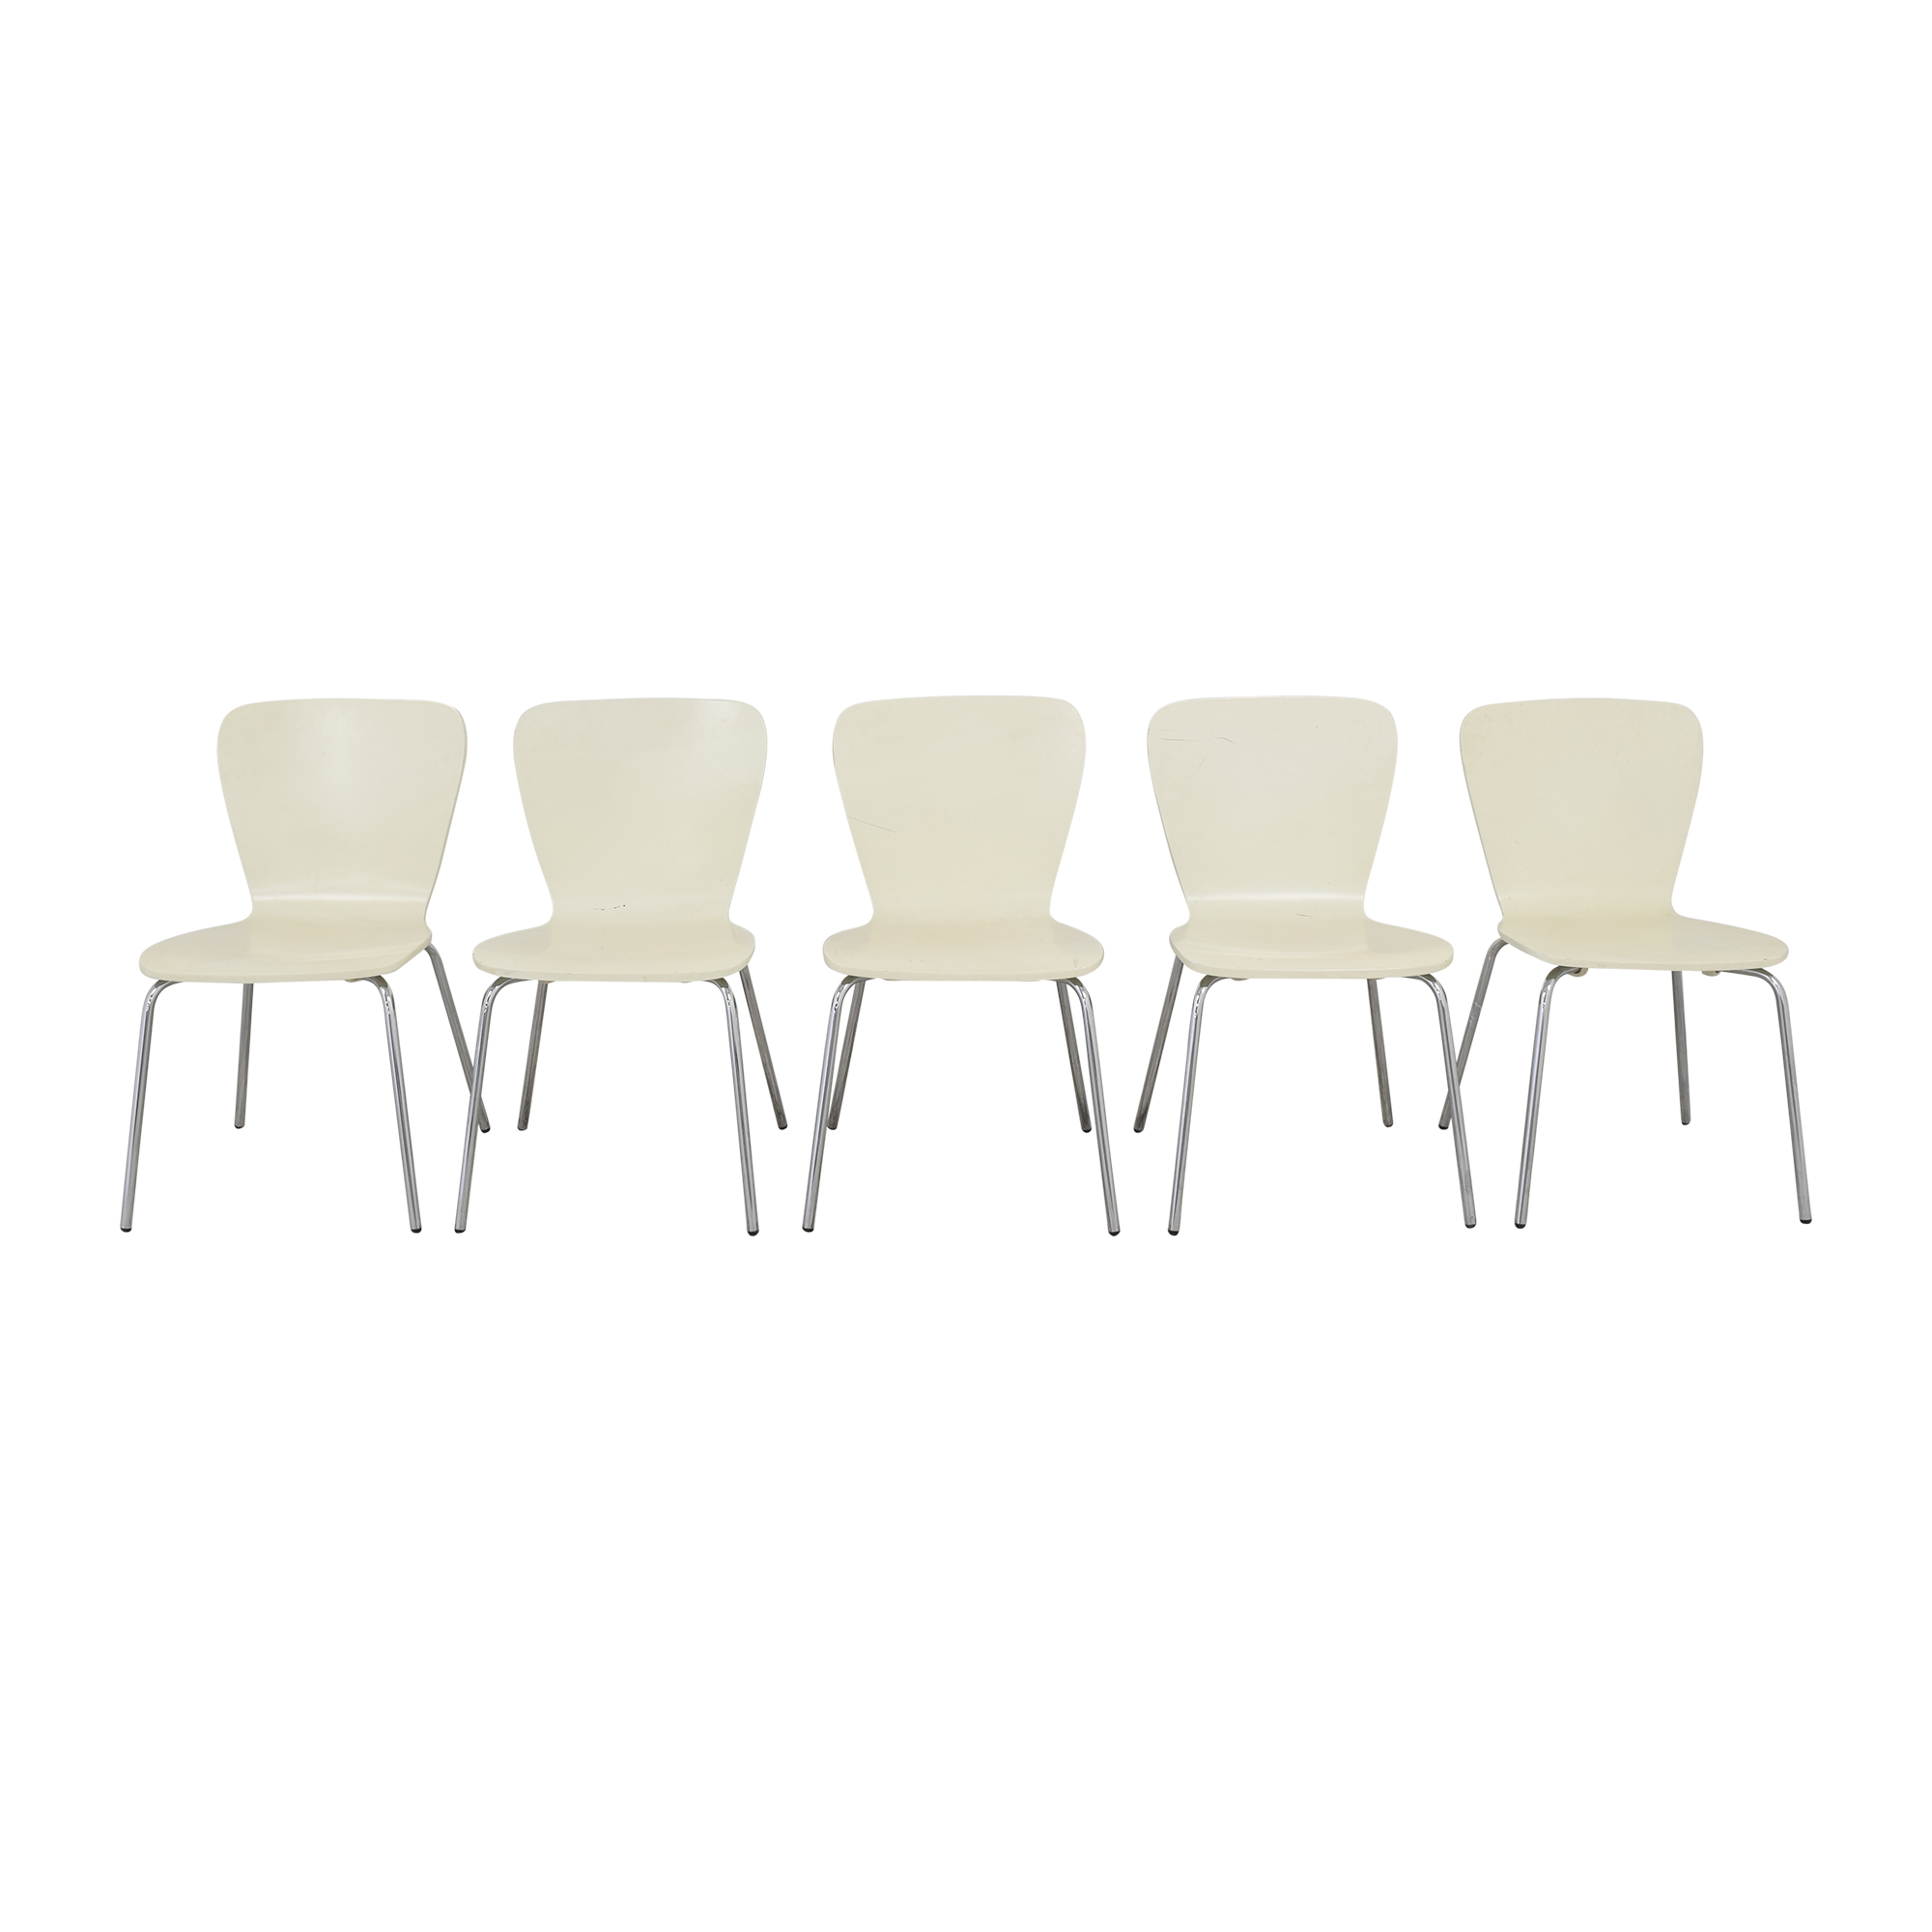 Crate & Barrel Crate & Barrel Felix Side Chairs discount